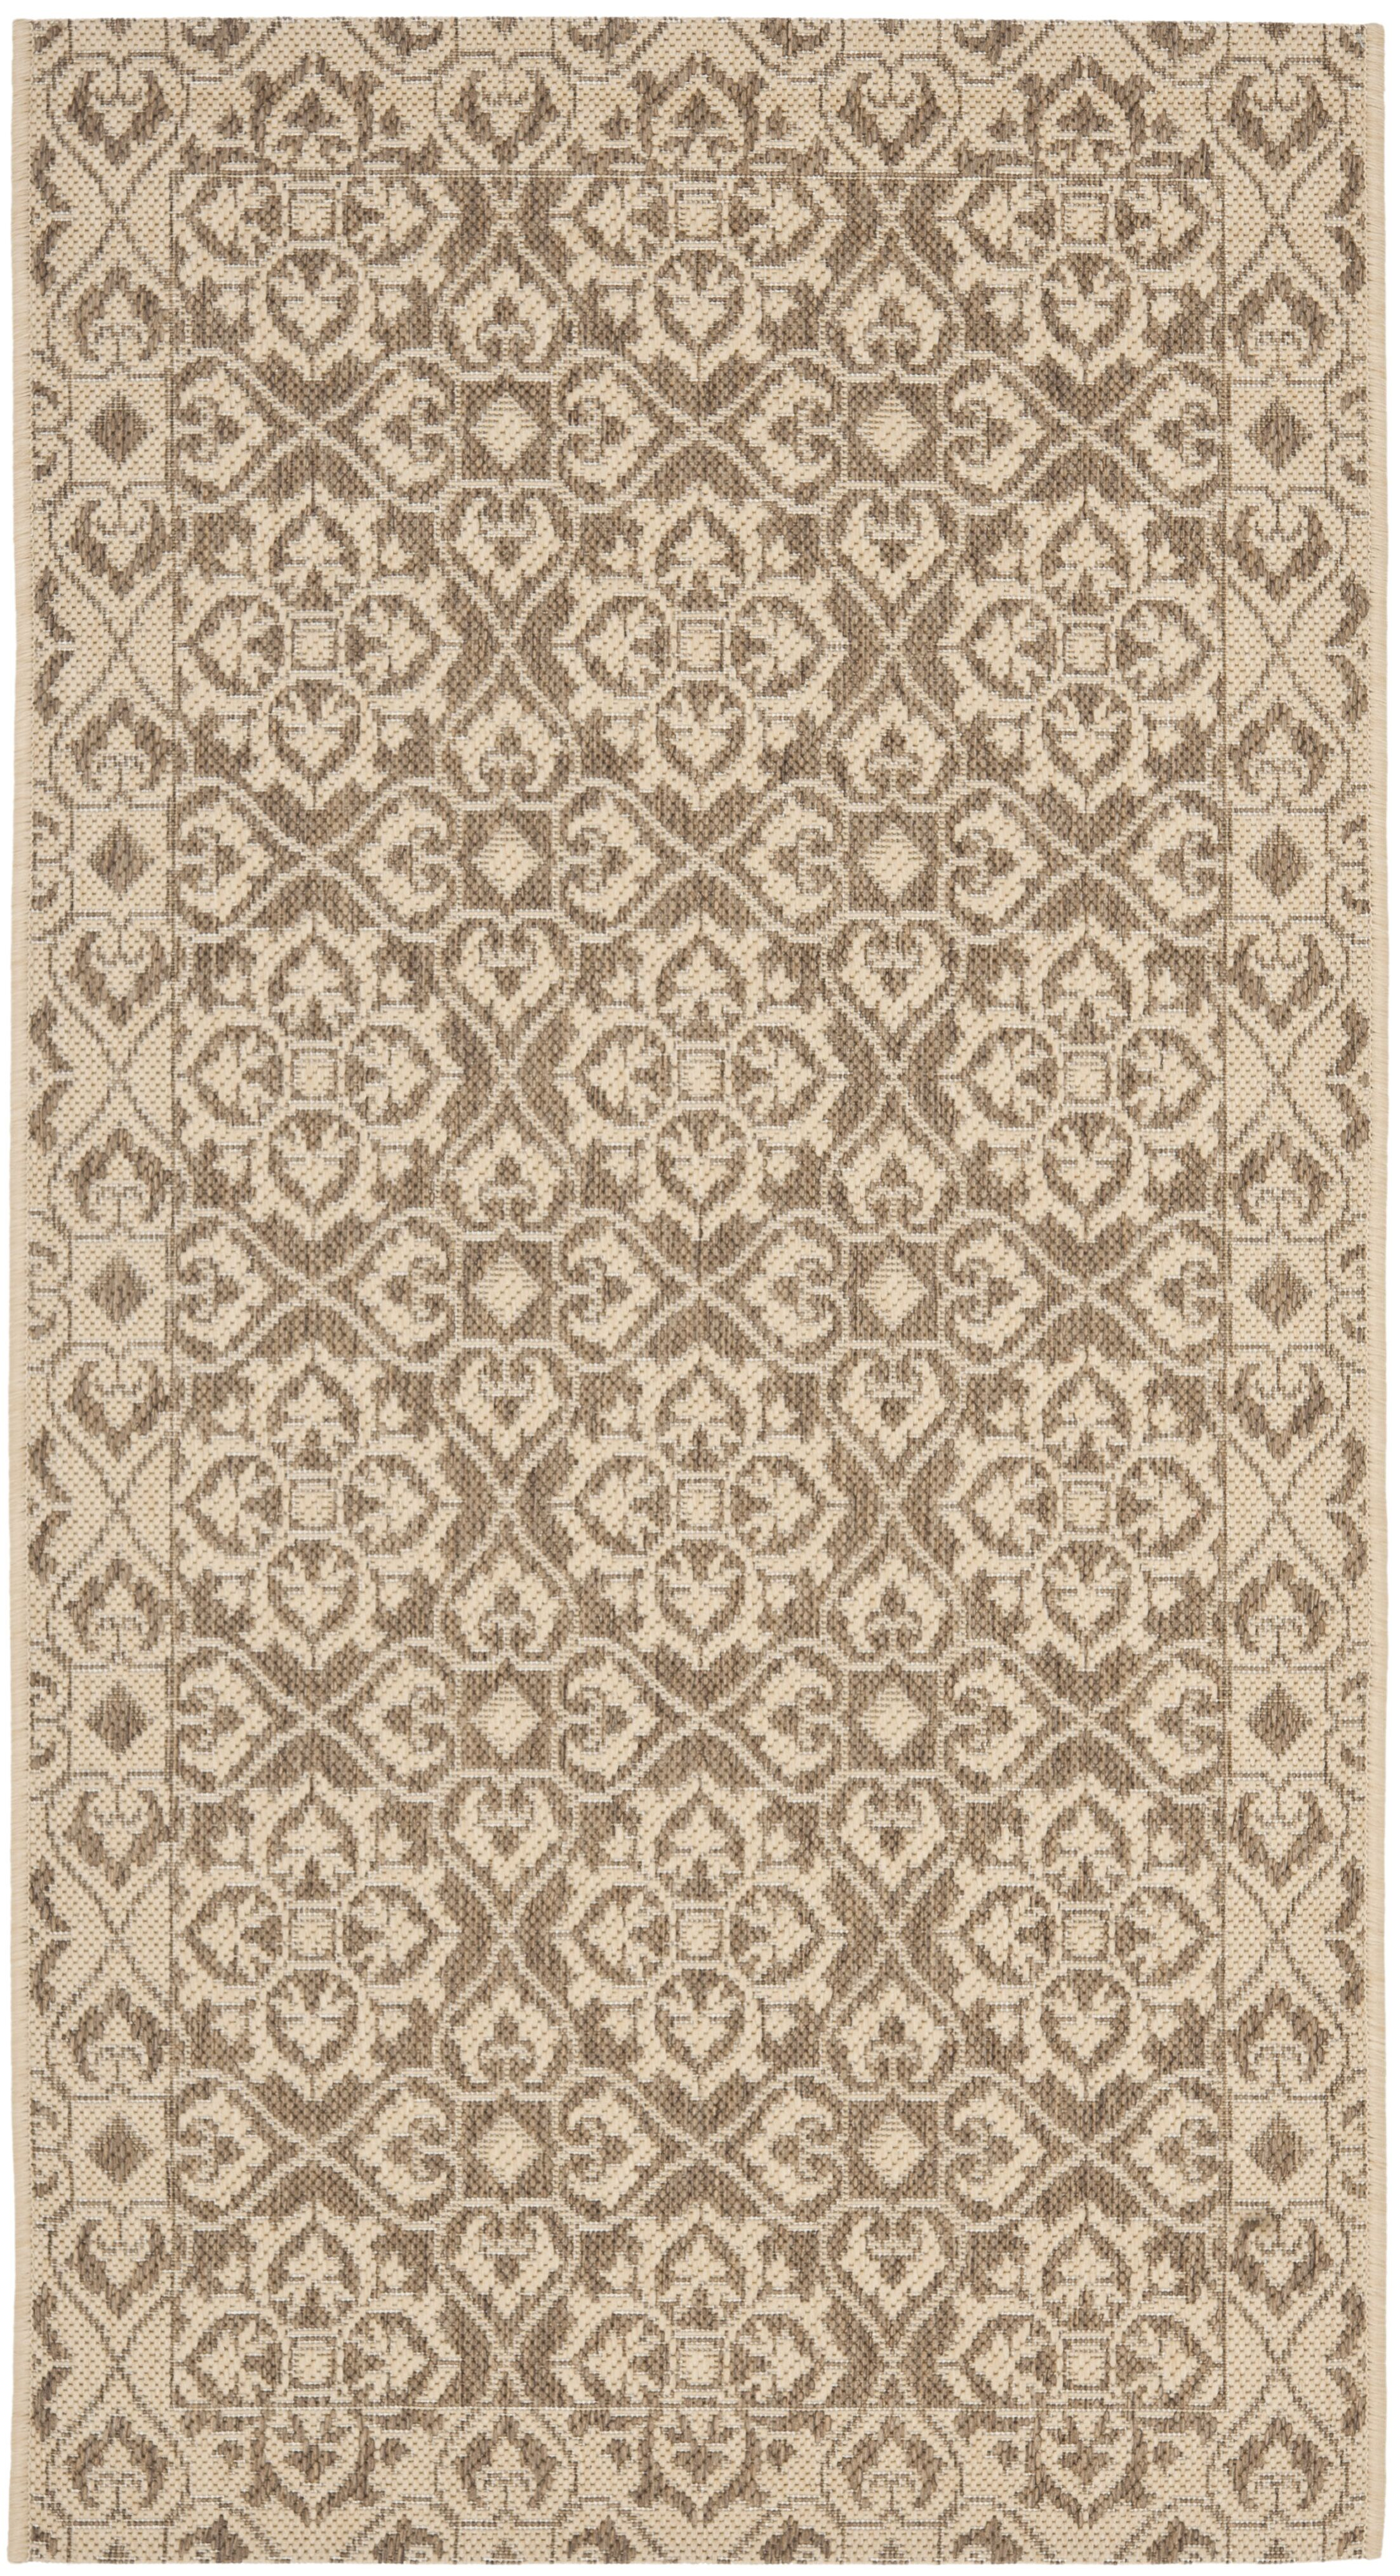 Short Brown / Creme Indoor/Outdoor Rug Rug Size: Rectangle 5'3